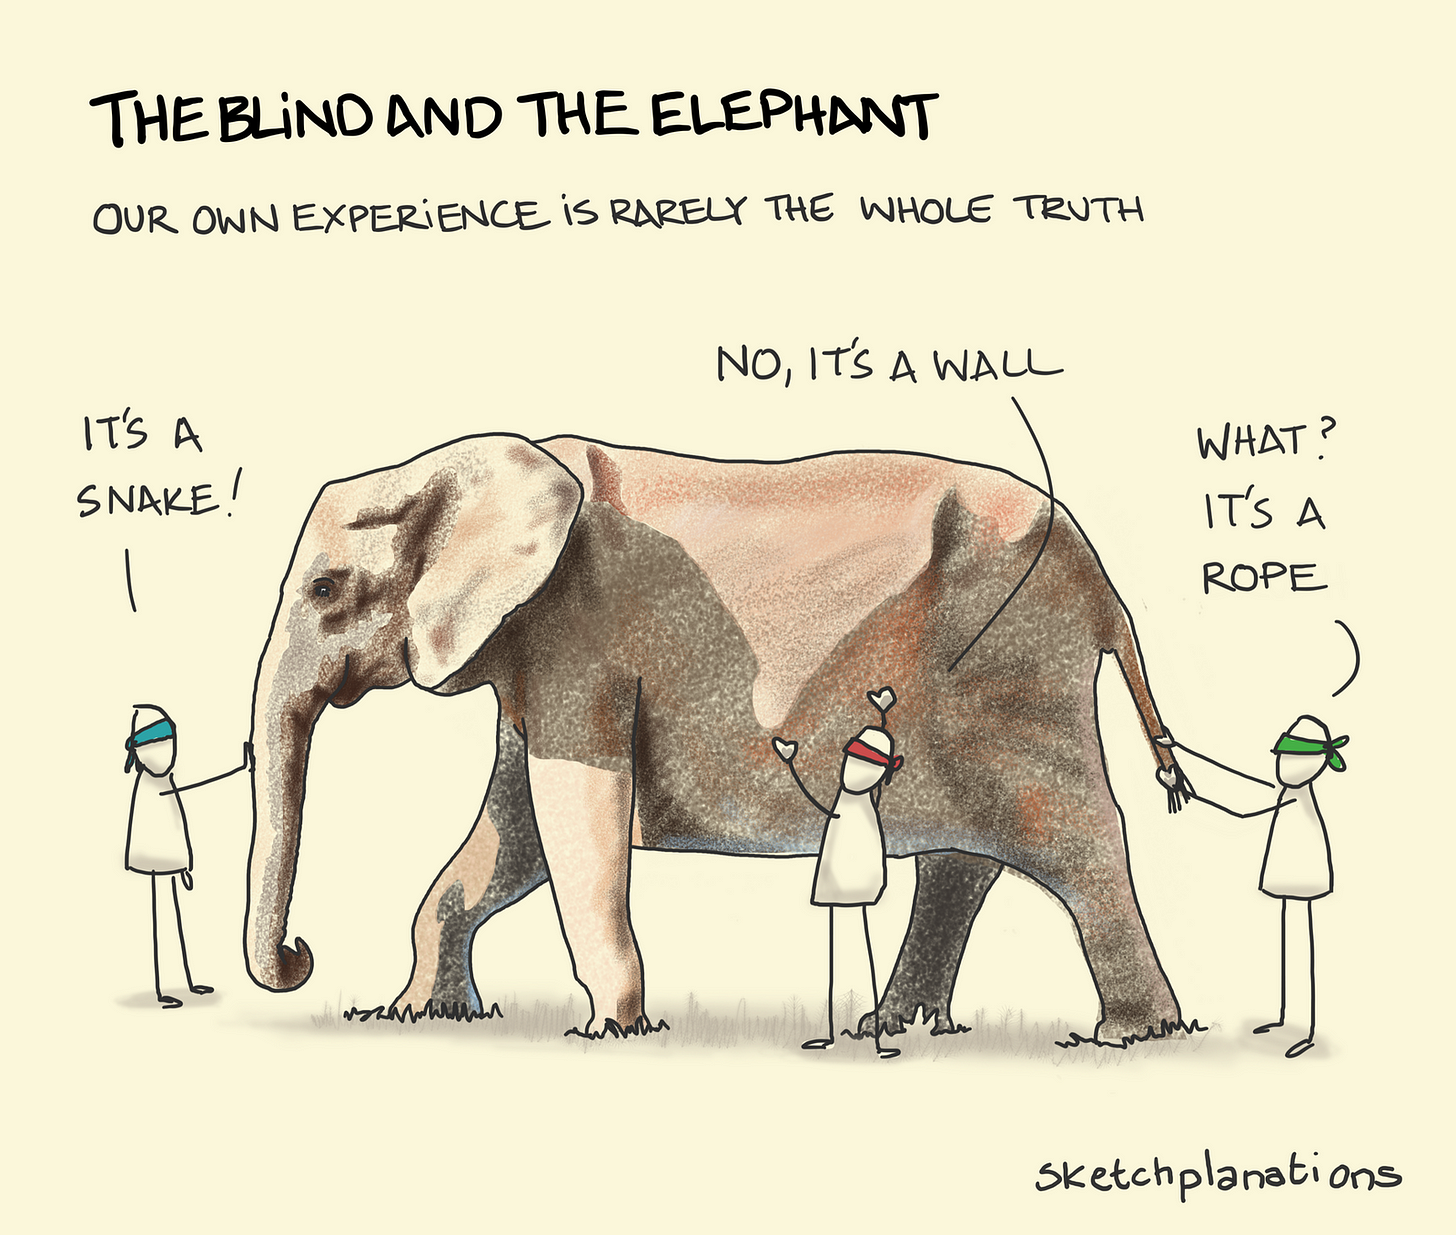 The blind and the elephant - Sketchplanations